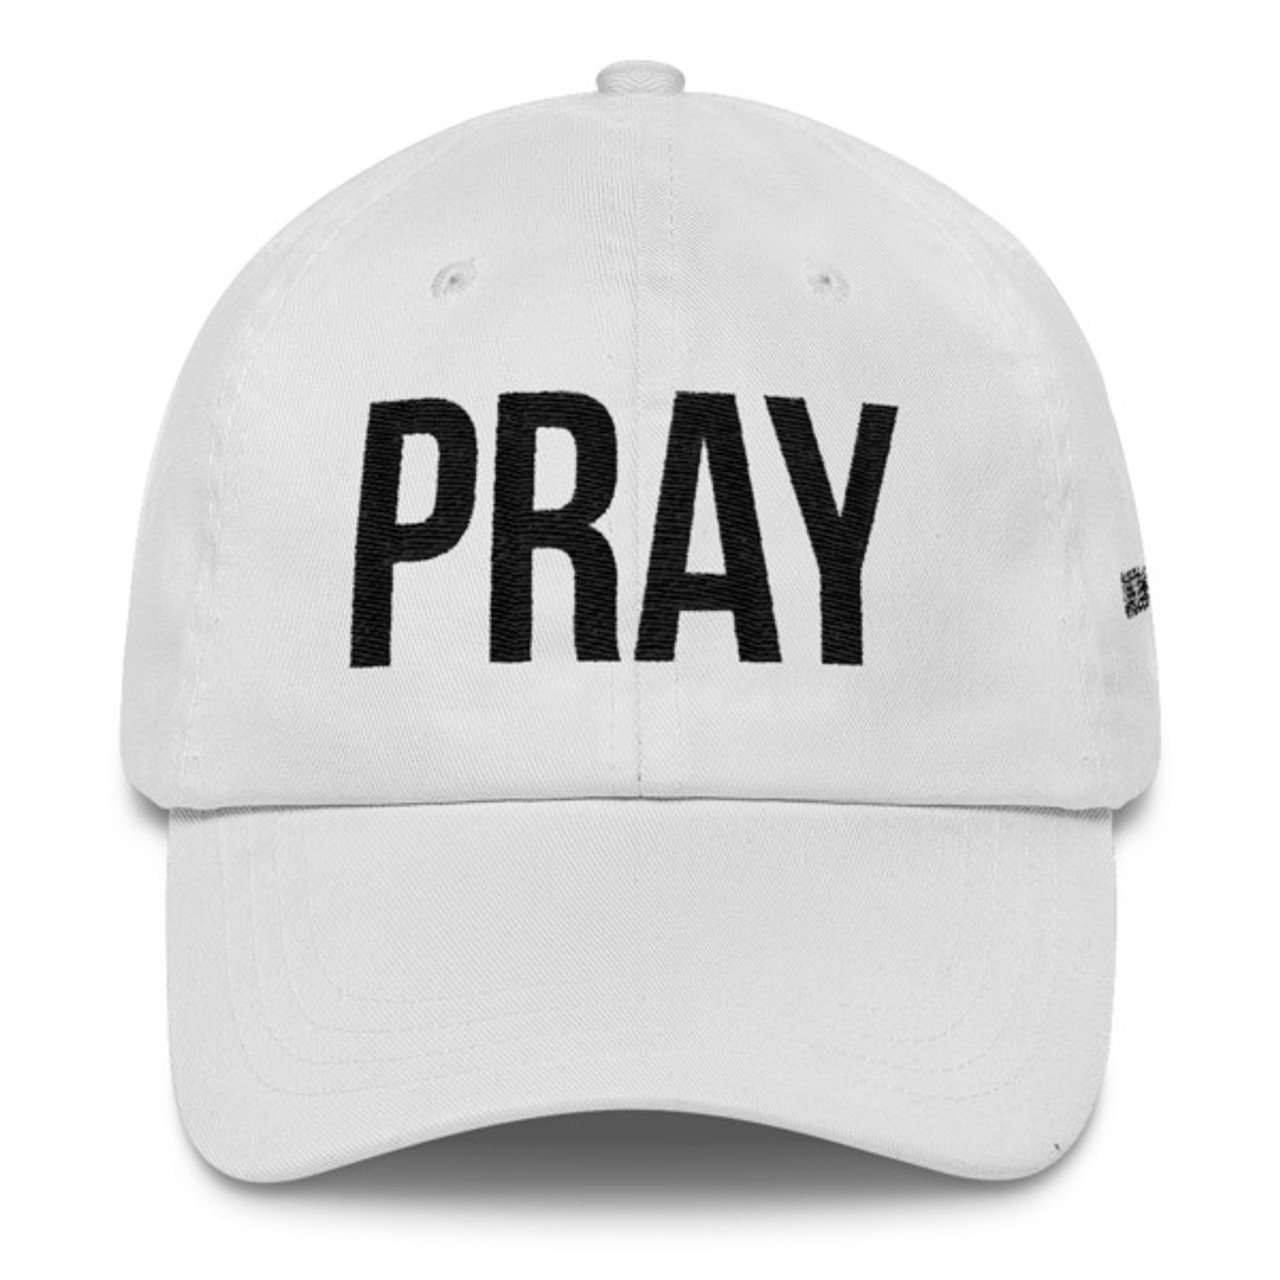 PRAY - Dad Hat - White